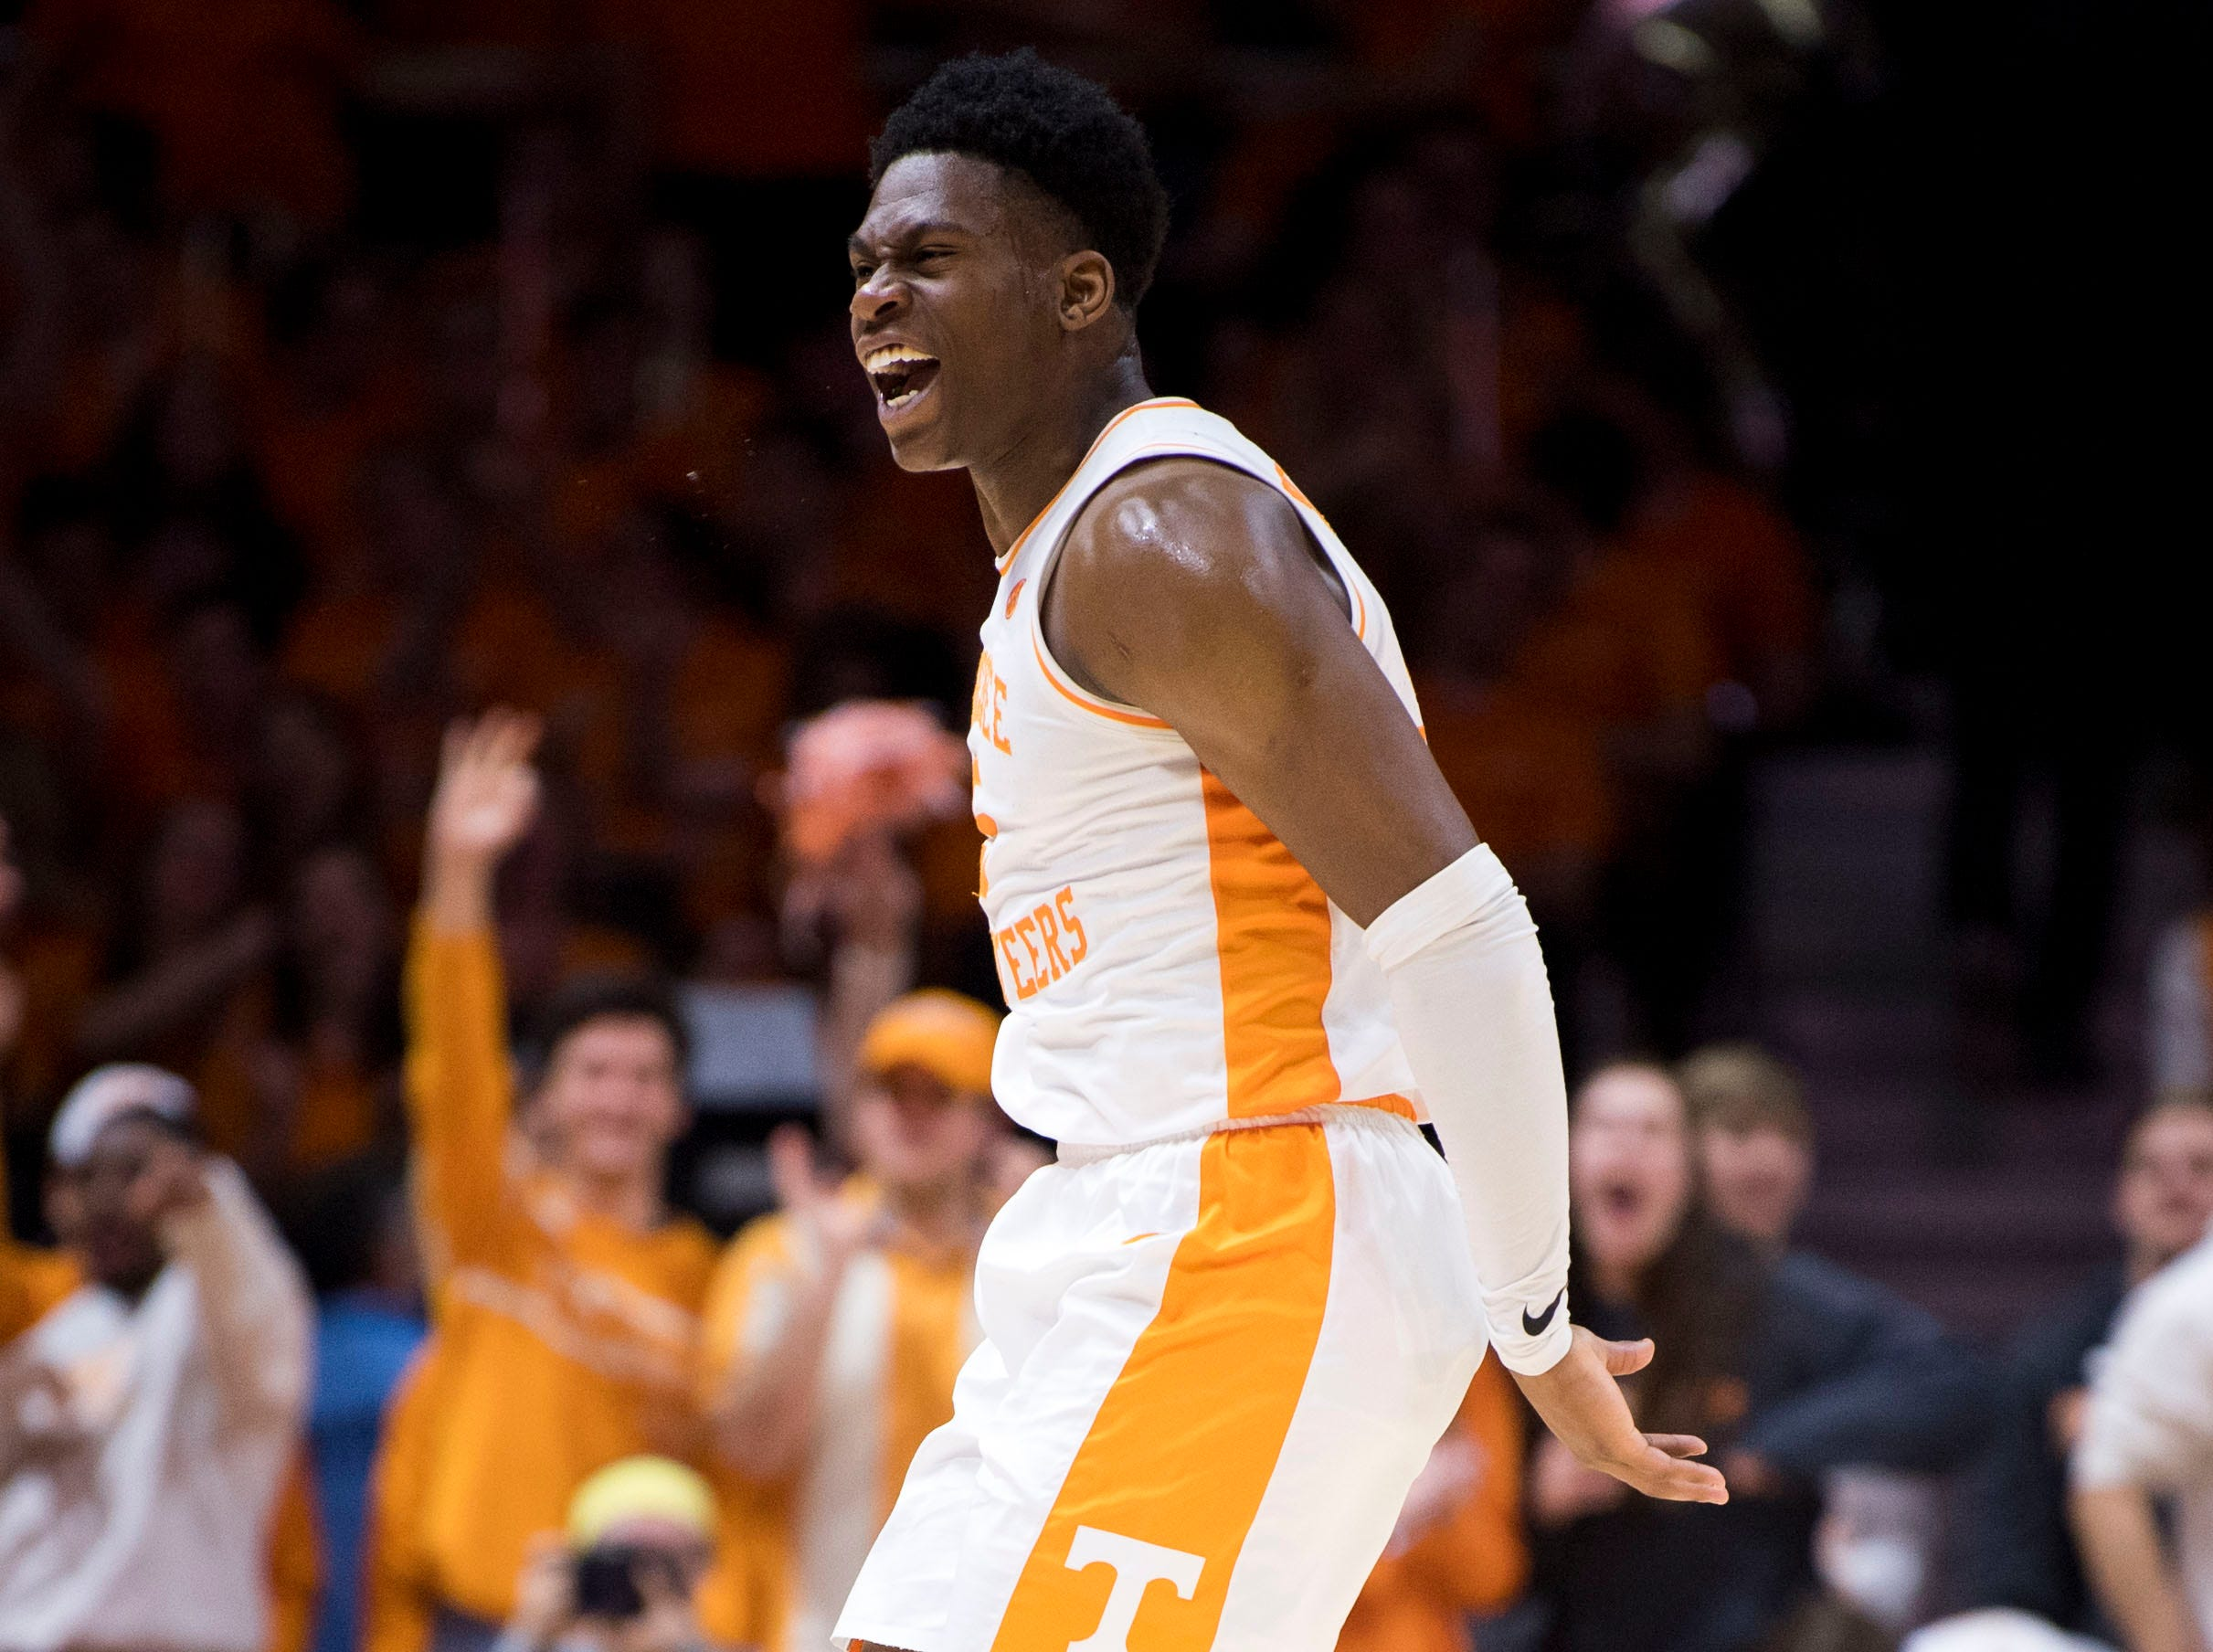 Tennessee guard Admiral Schofield (5) celebrates a play during Tennessee's home finale against Mississippi State at Thompson-Boling Arena in Knoxville on Tuesday, March 5, 2019.